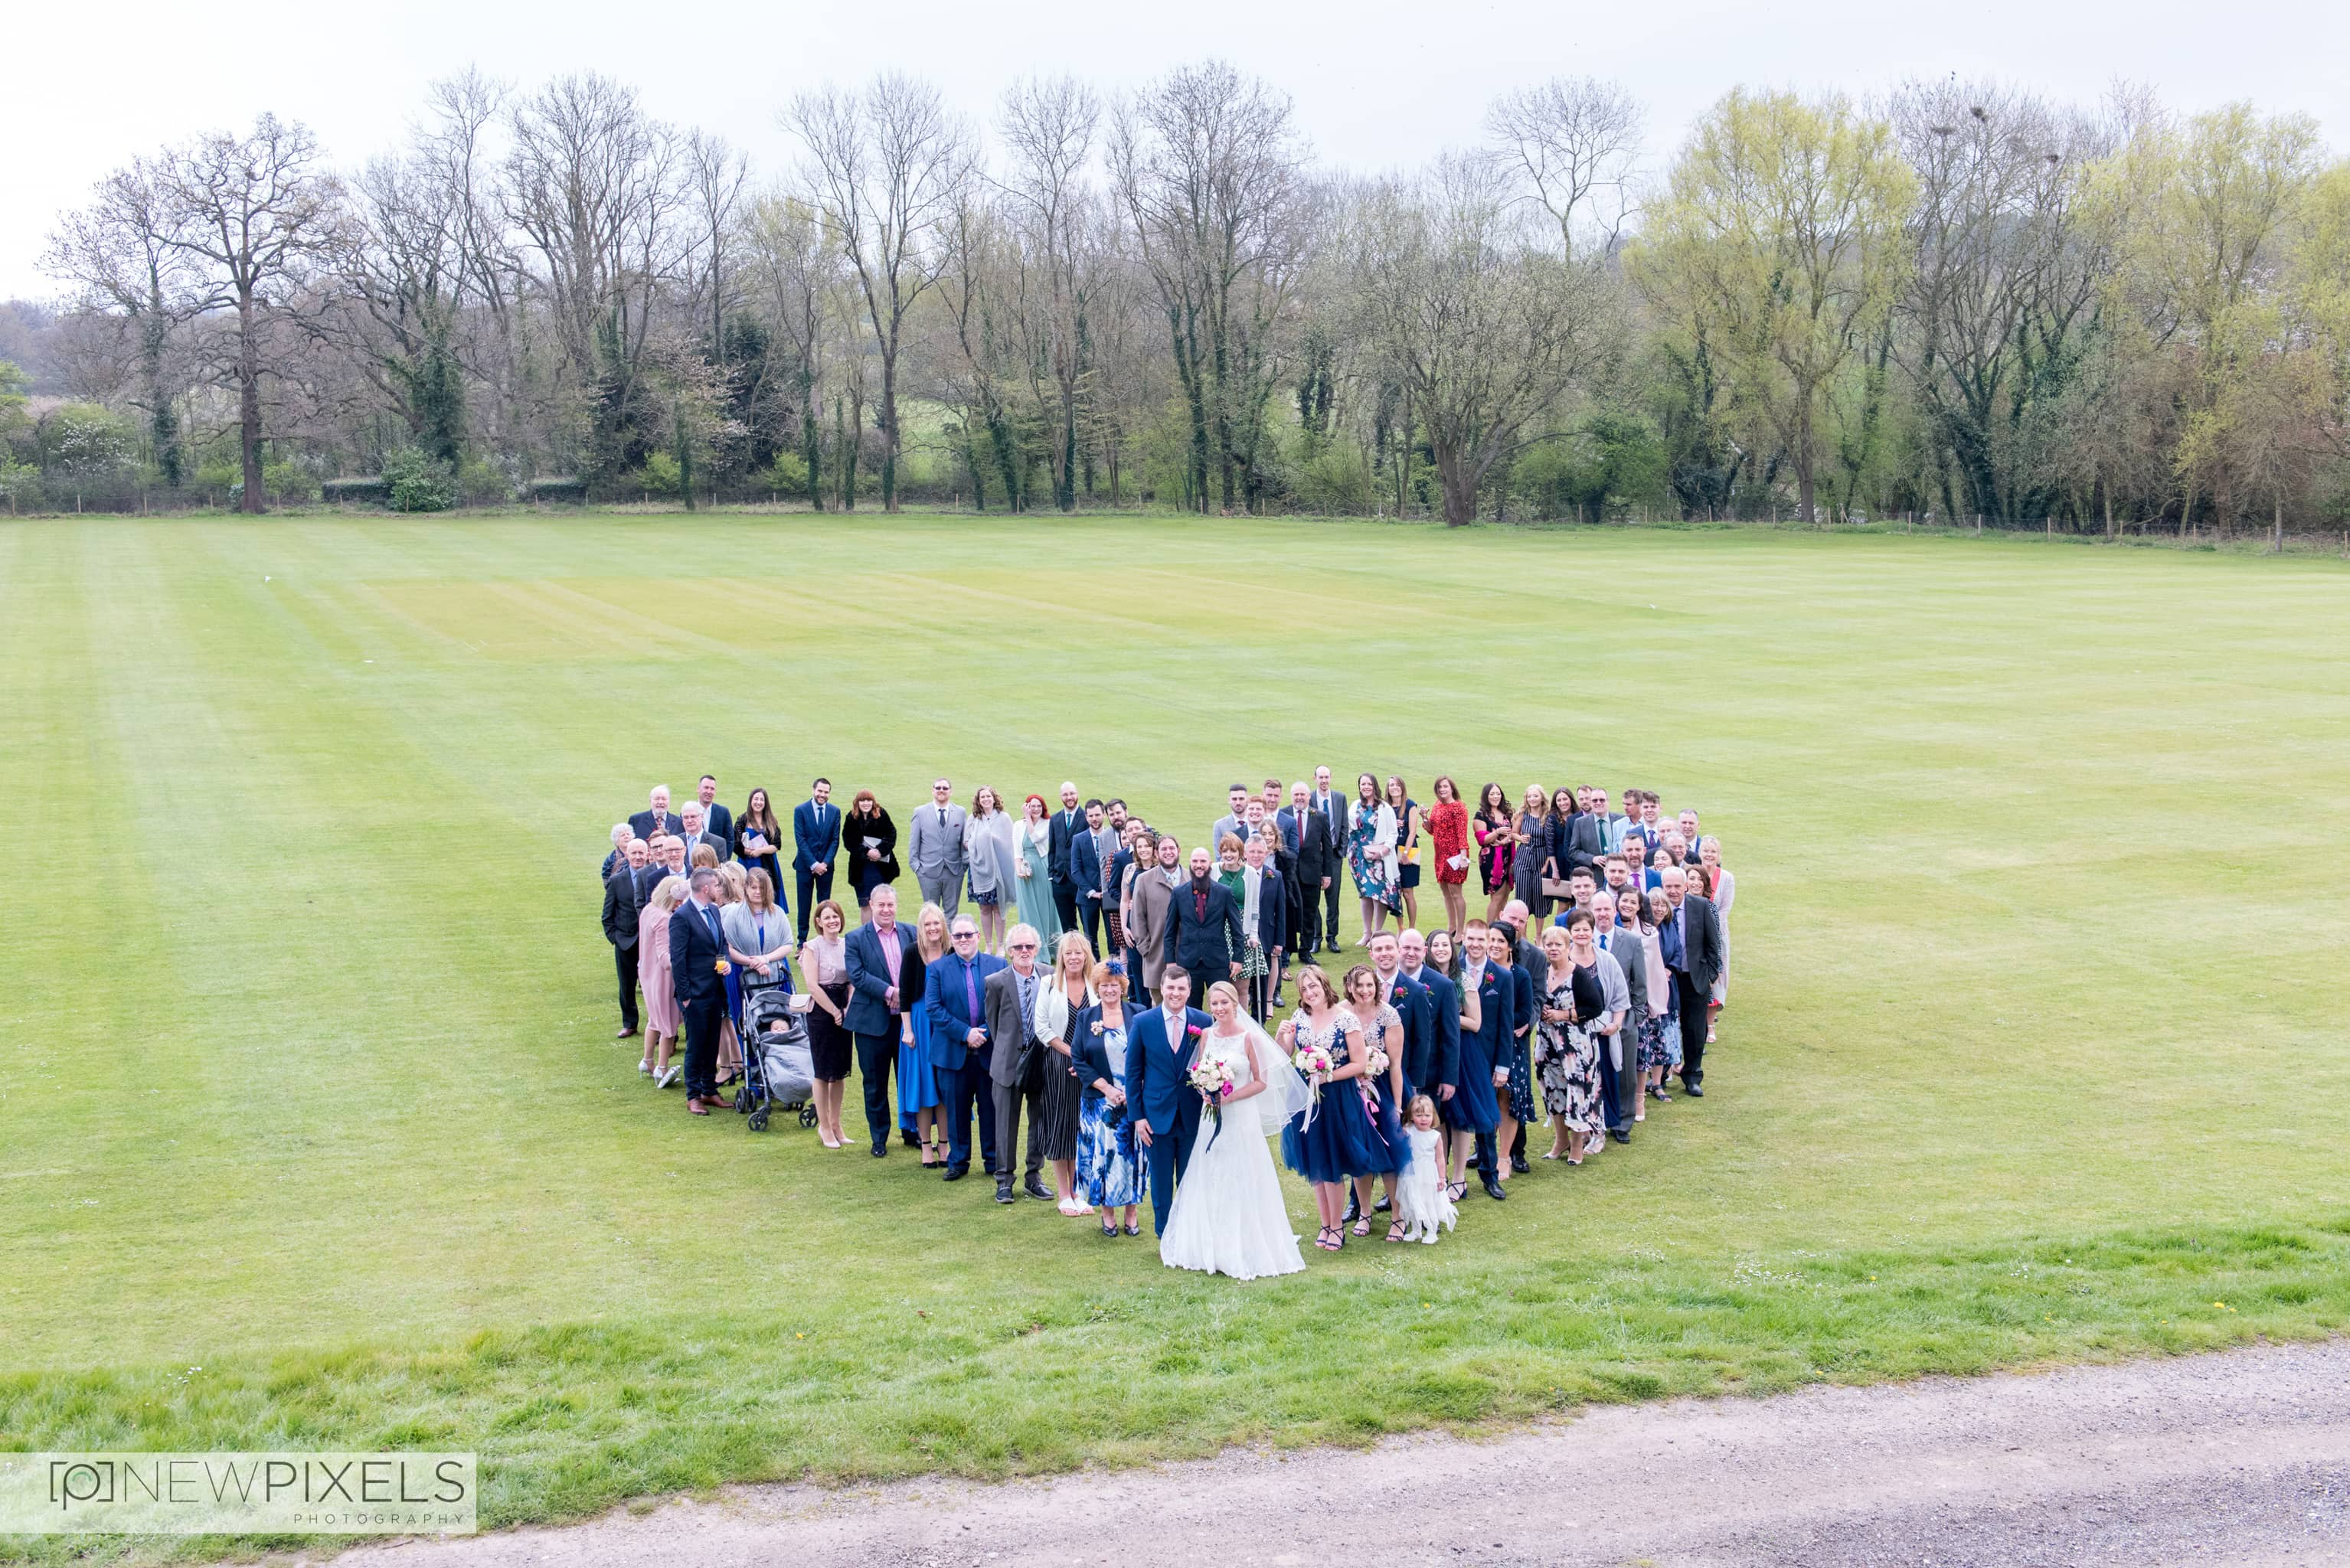 Wedding photography at London Shenley Club, Wedding photographer at London Shenley Club, group shots at London Shenley Club, Wedding photographer at London Shenley Club